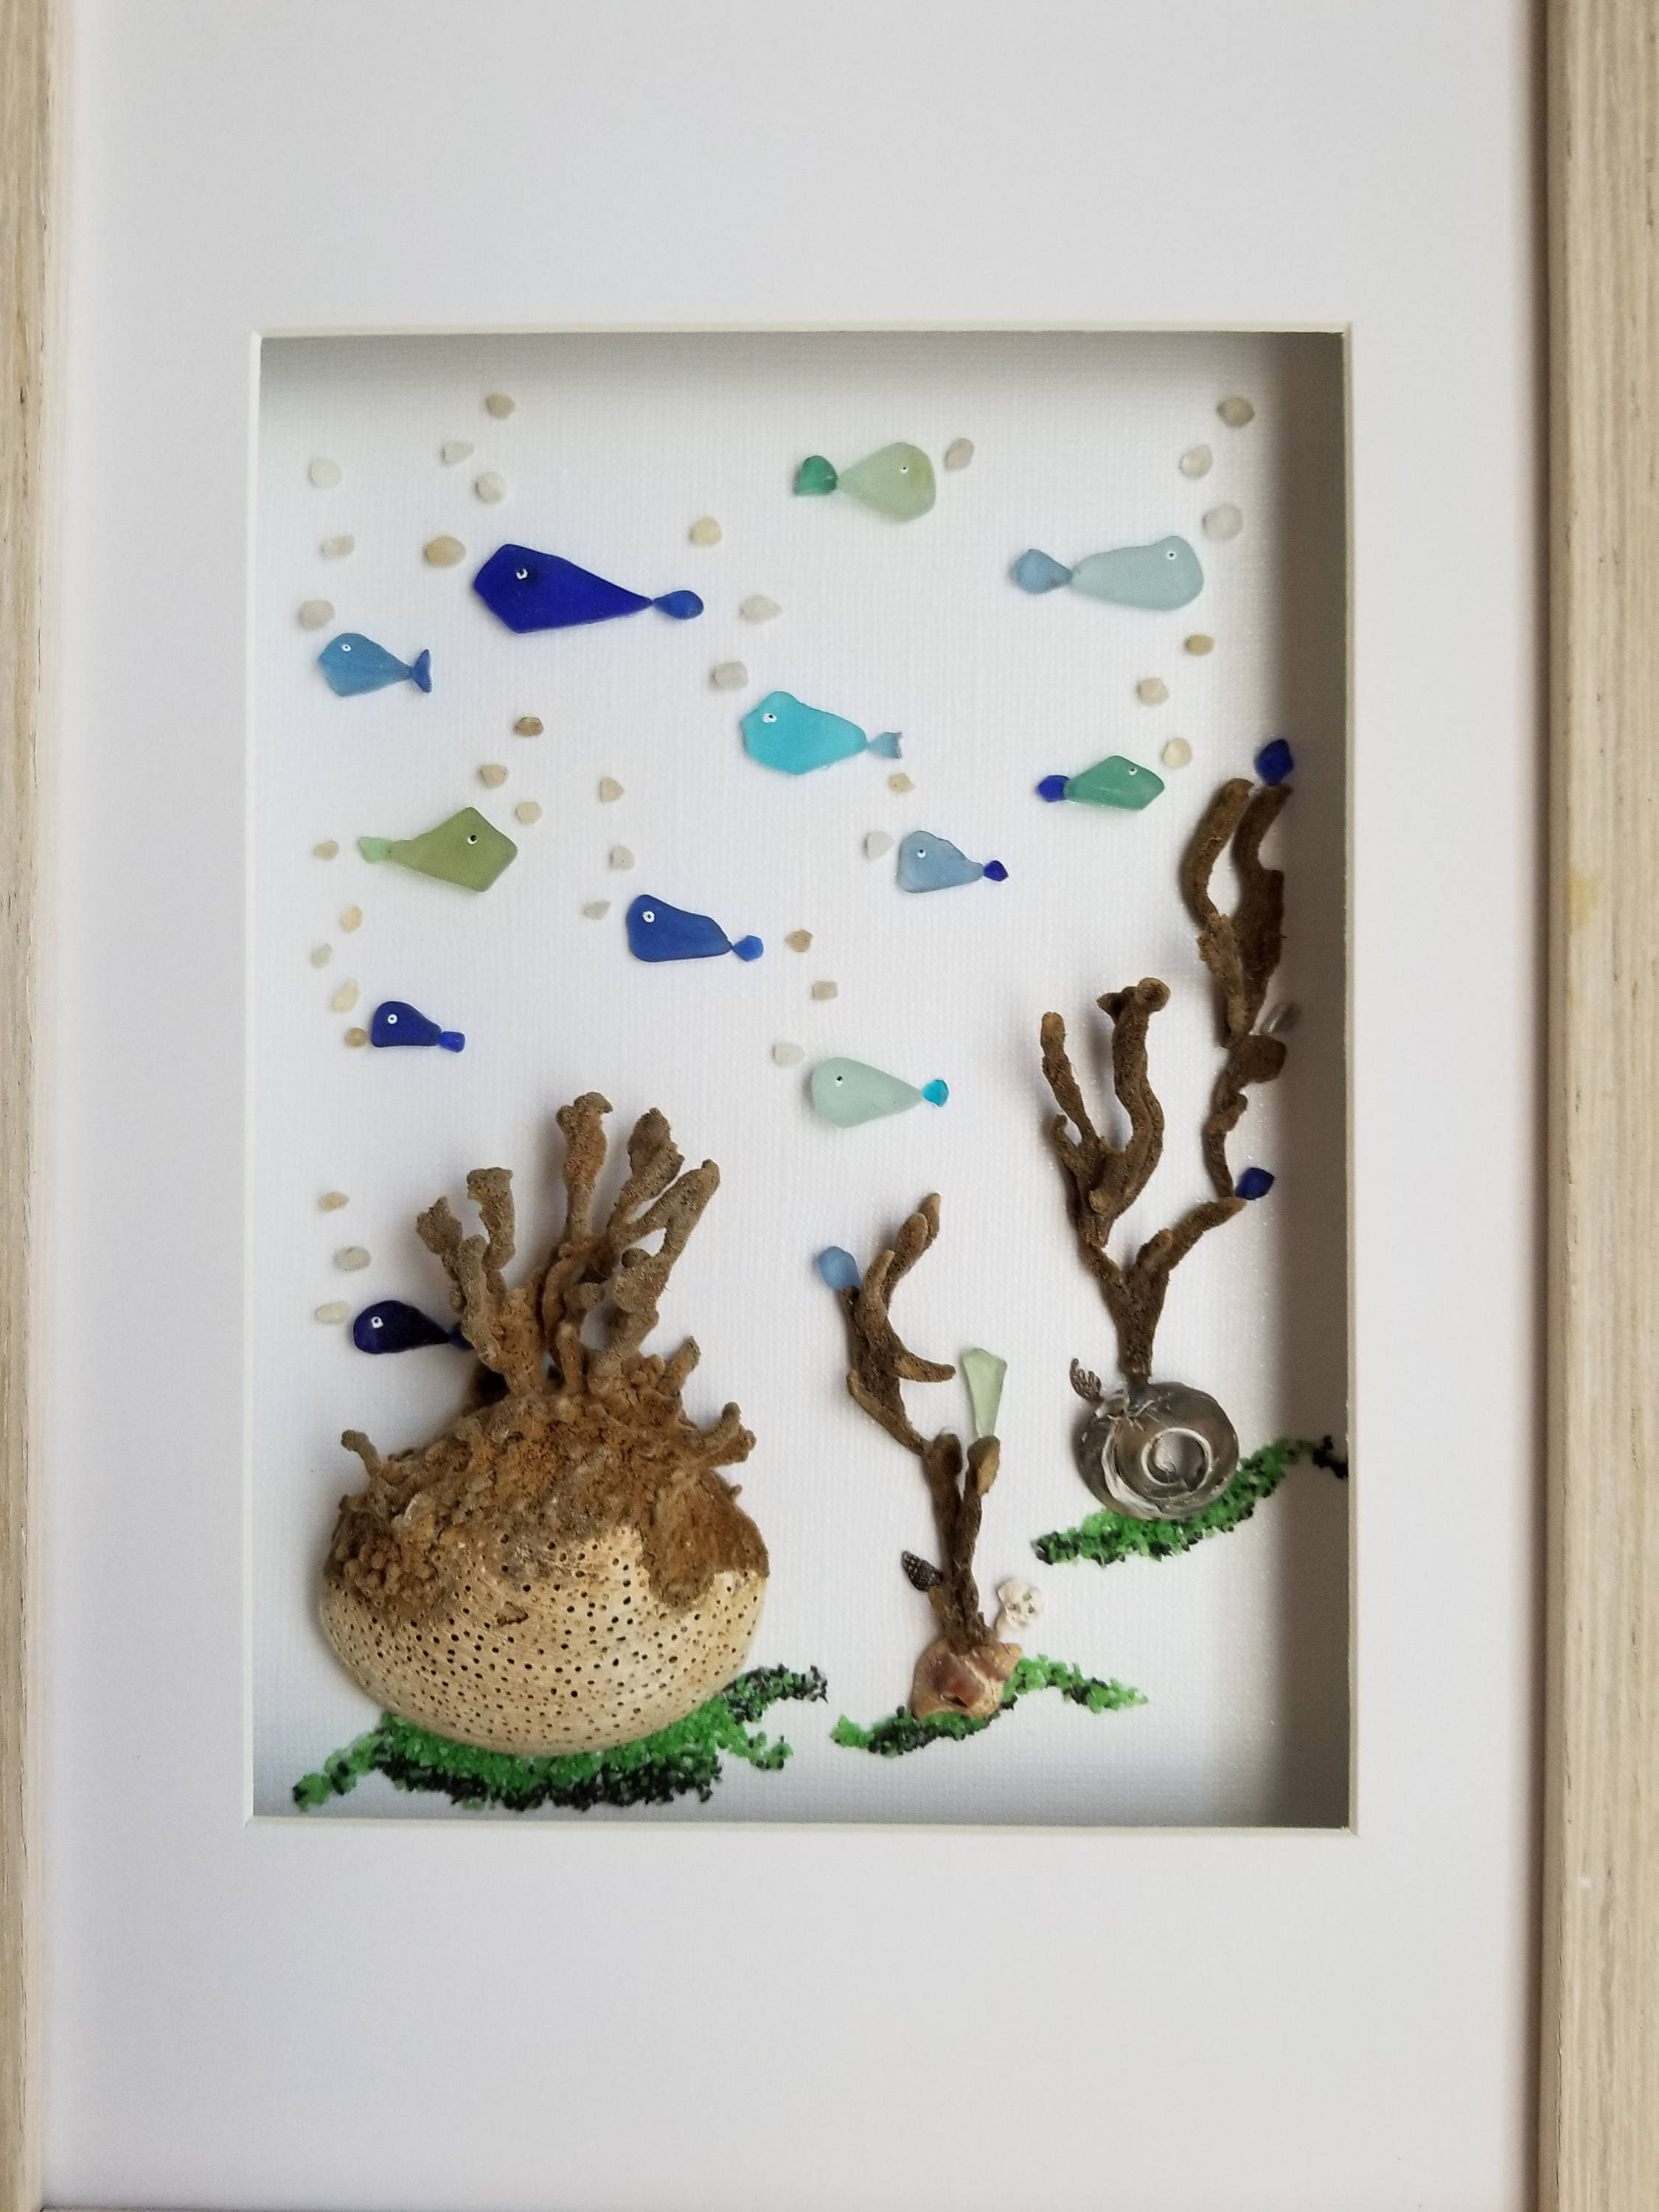 Sea glass art framed sea glass bathroom wall decor costal for Sea glass bathroom ideas